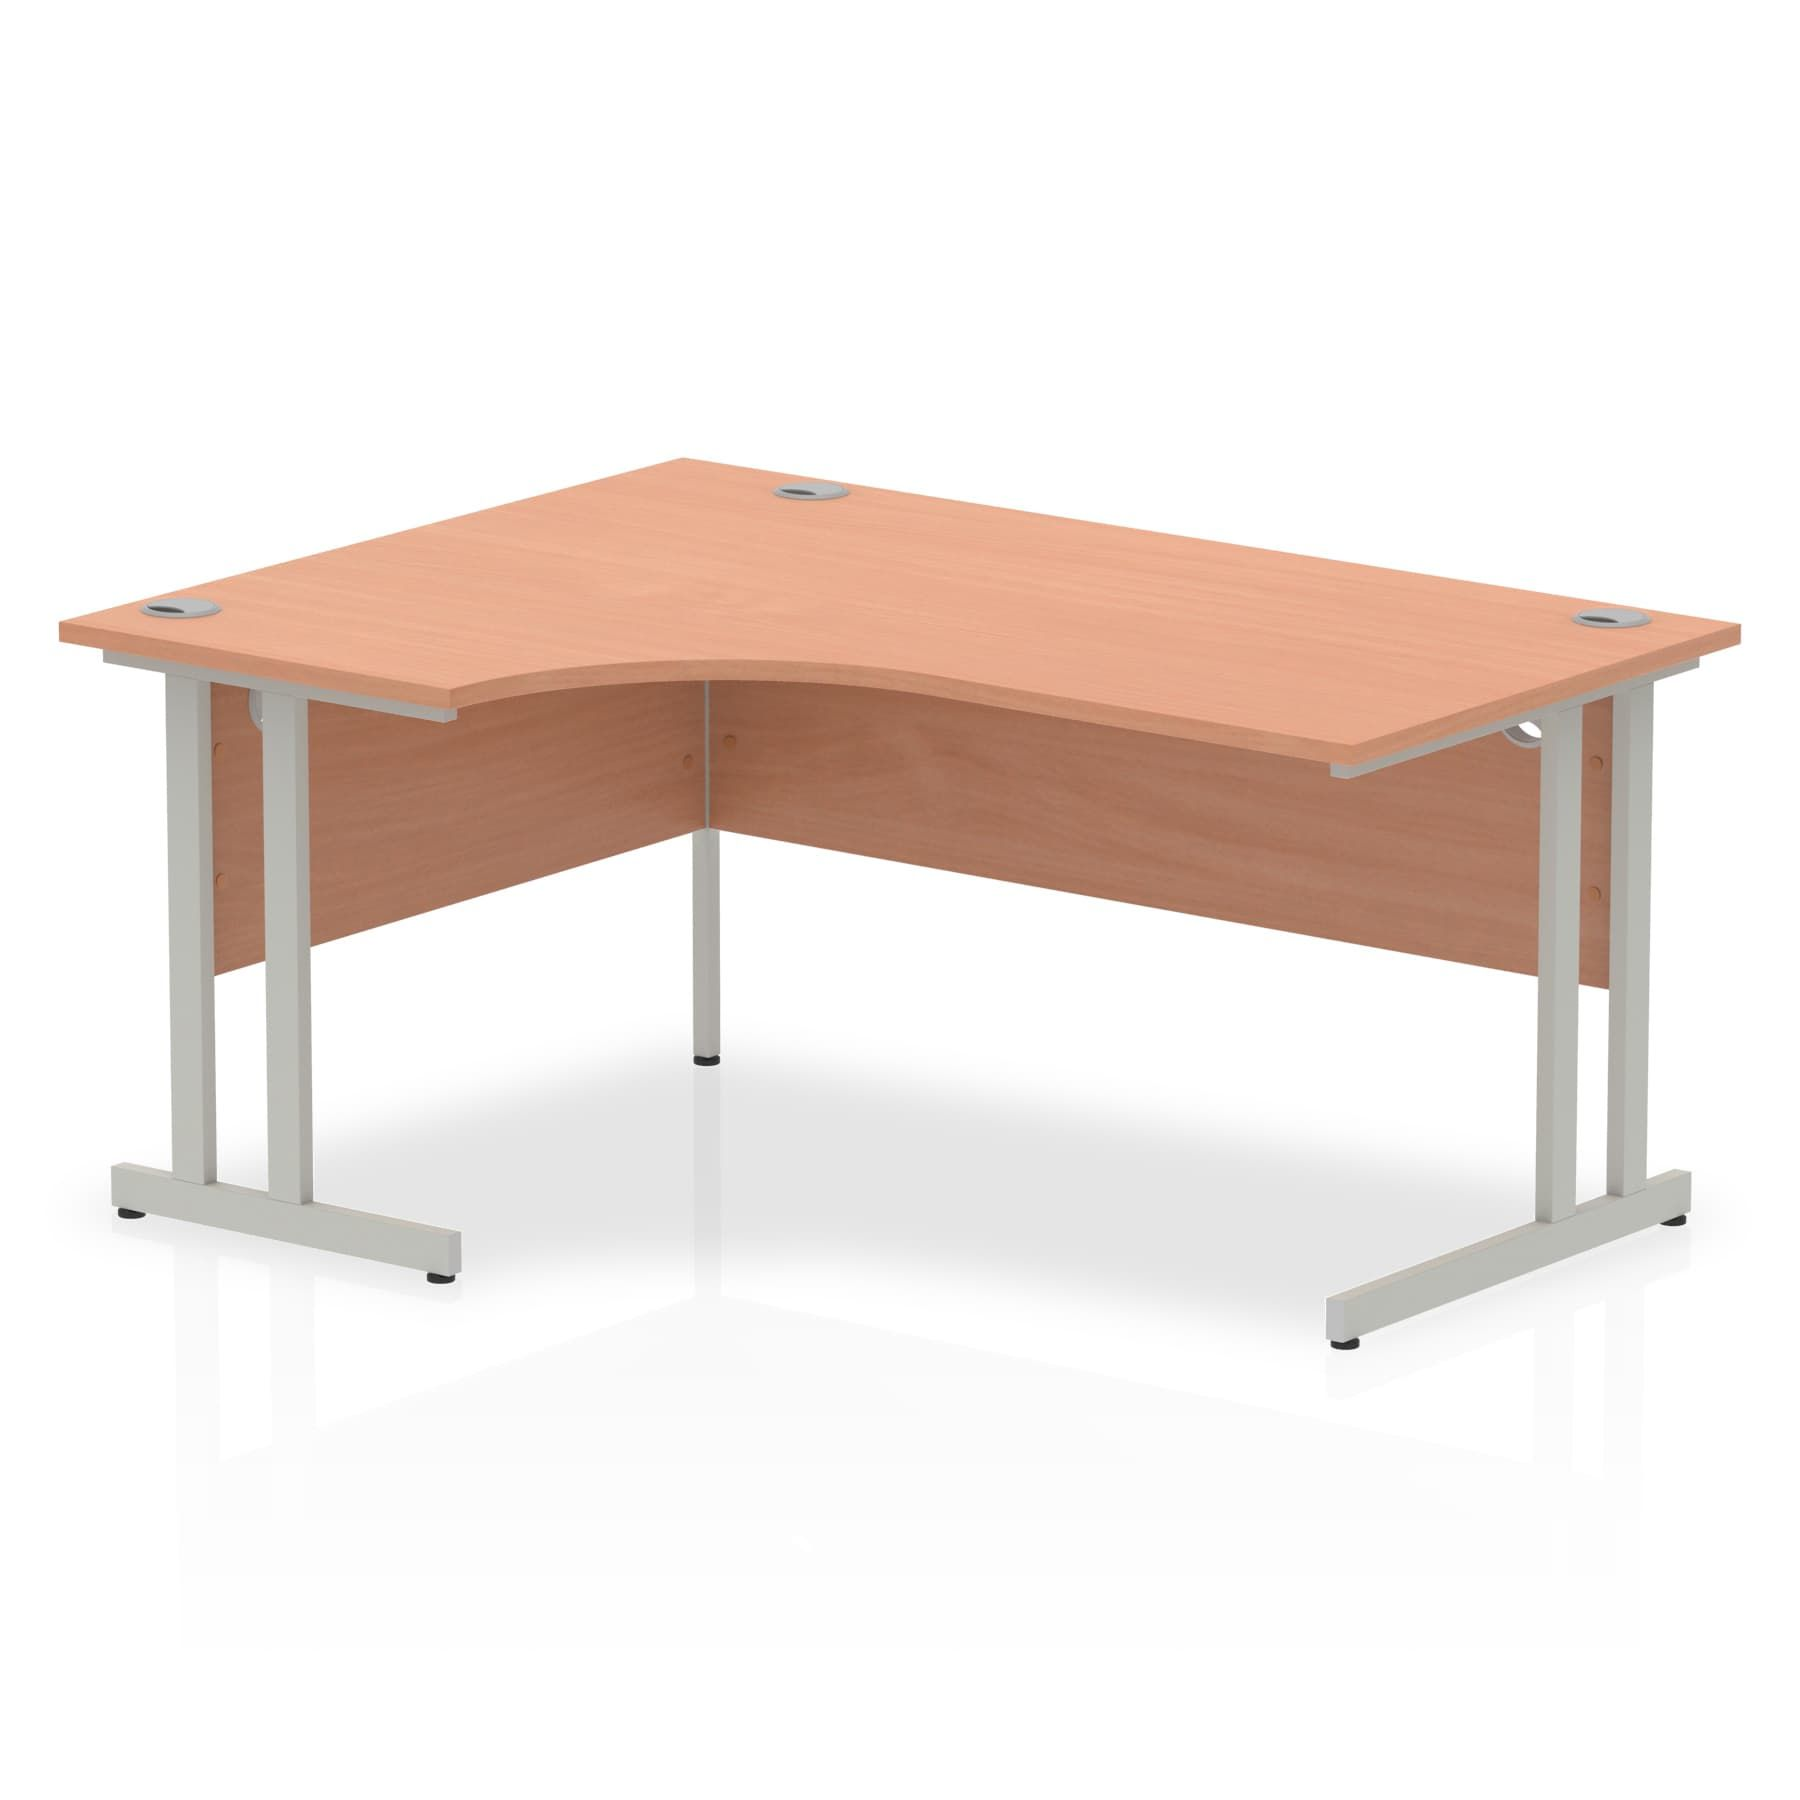 Impulse 1600 Left Hand Crescent Desk with Cantilever Leg